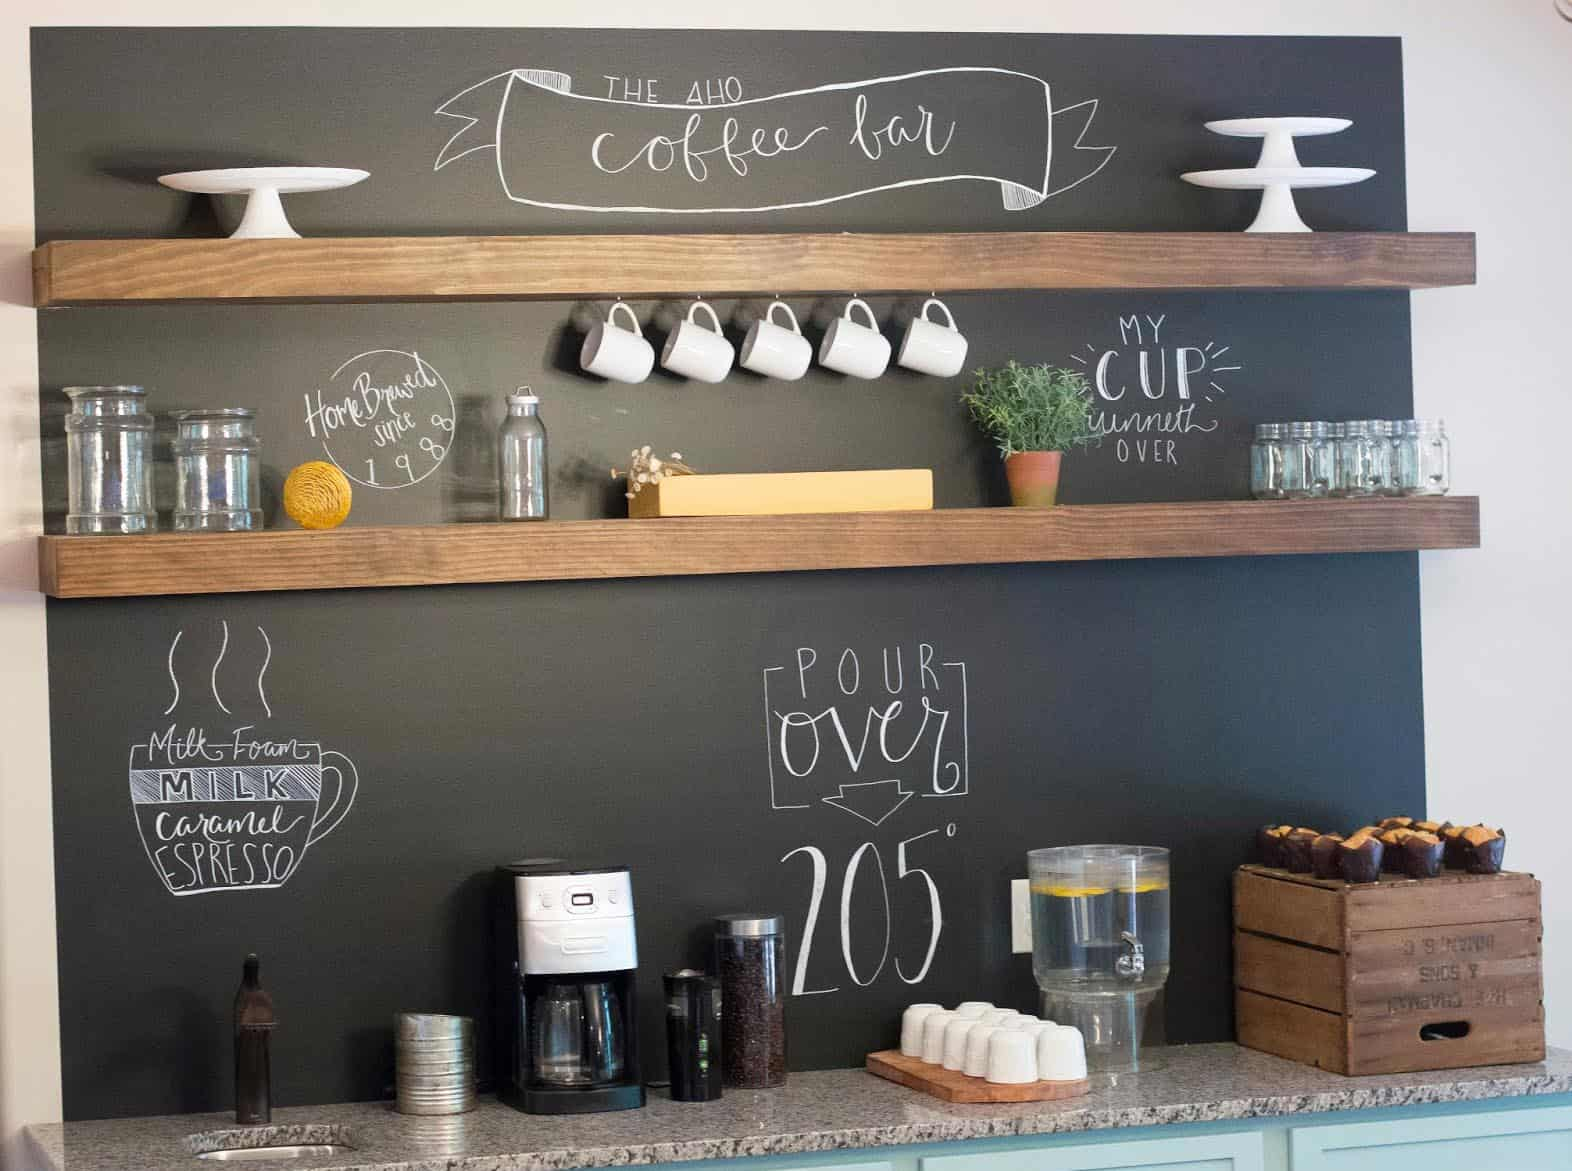 Chalkboard at home coffe bar